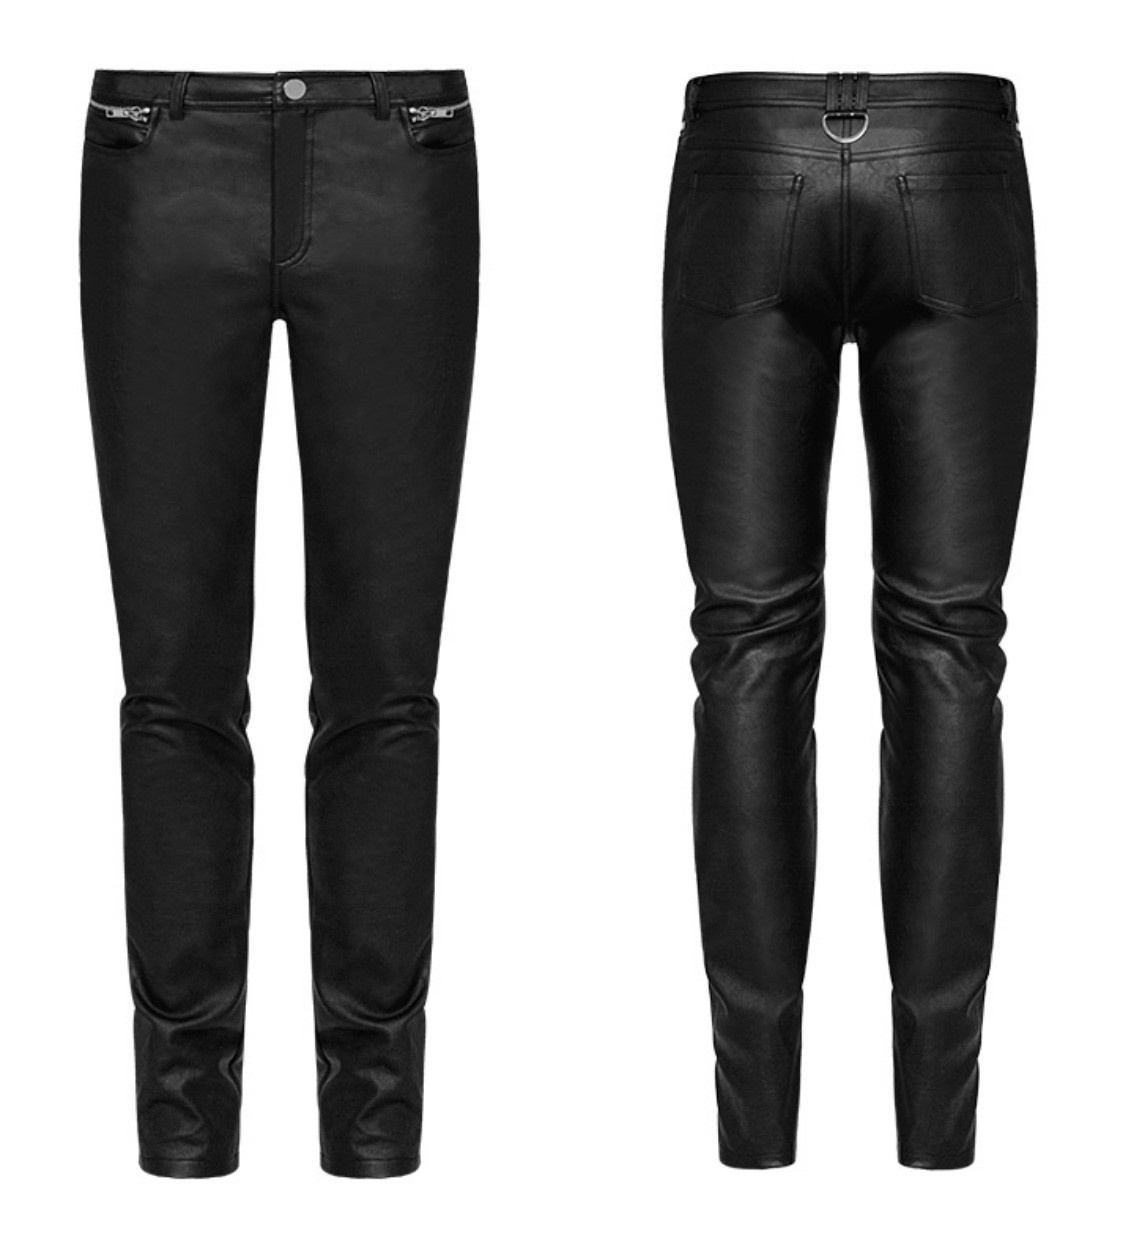 PNKR Slim Cut Faux Leather Pants